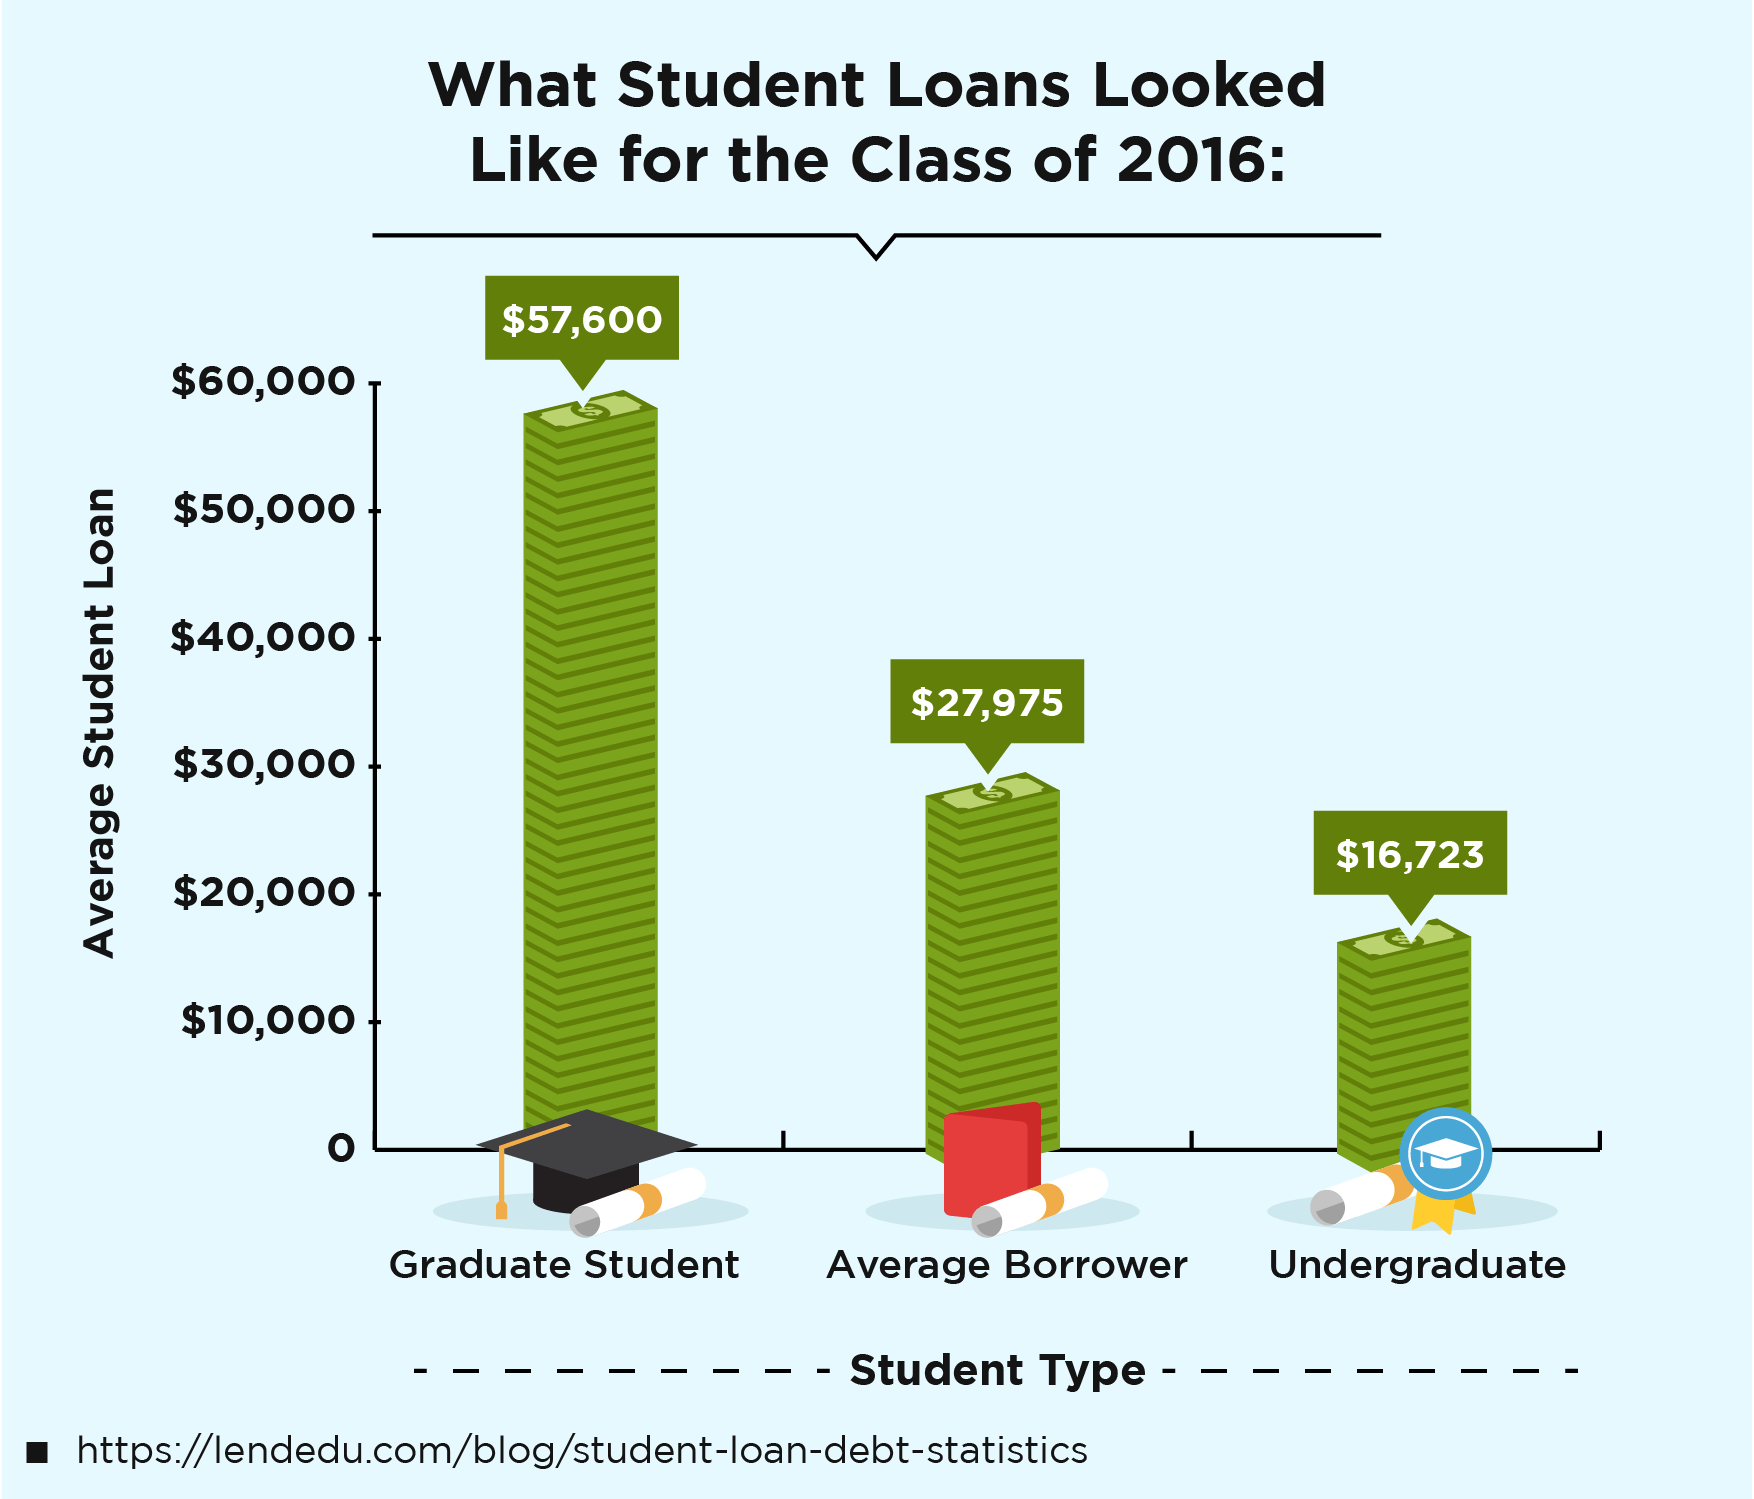 What Student Loans Looked Like for the Class of 2016